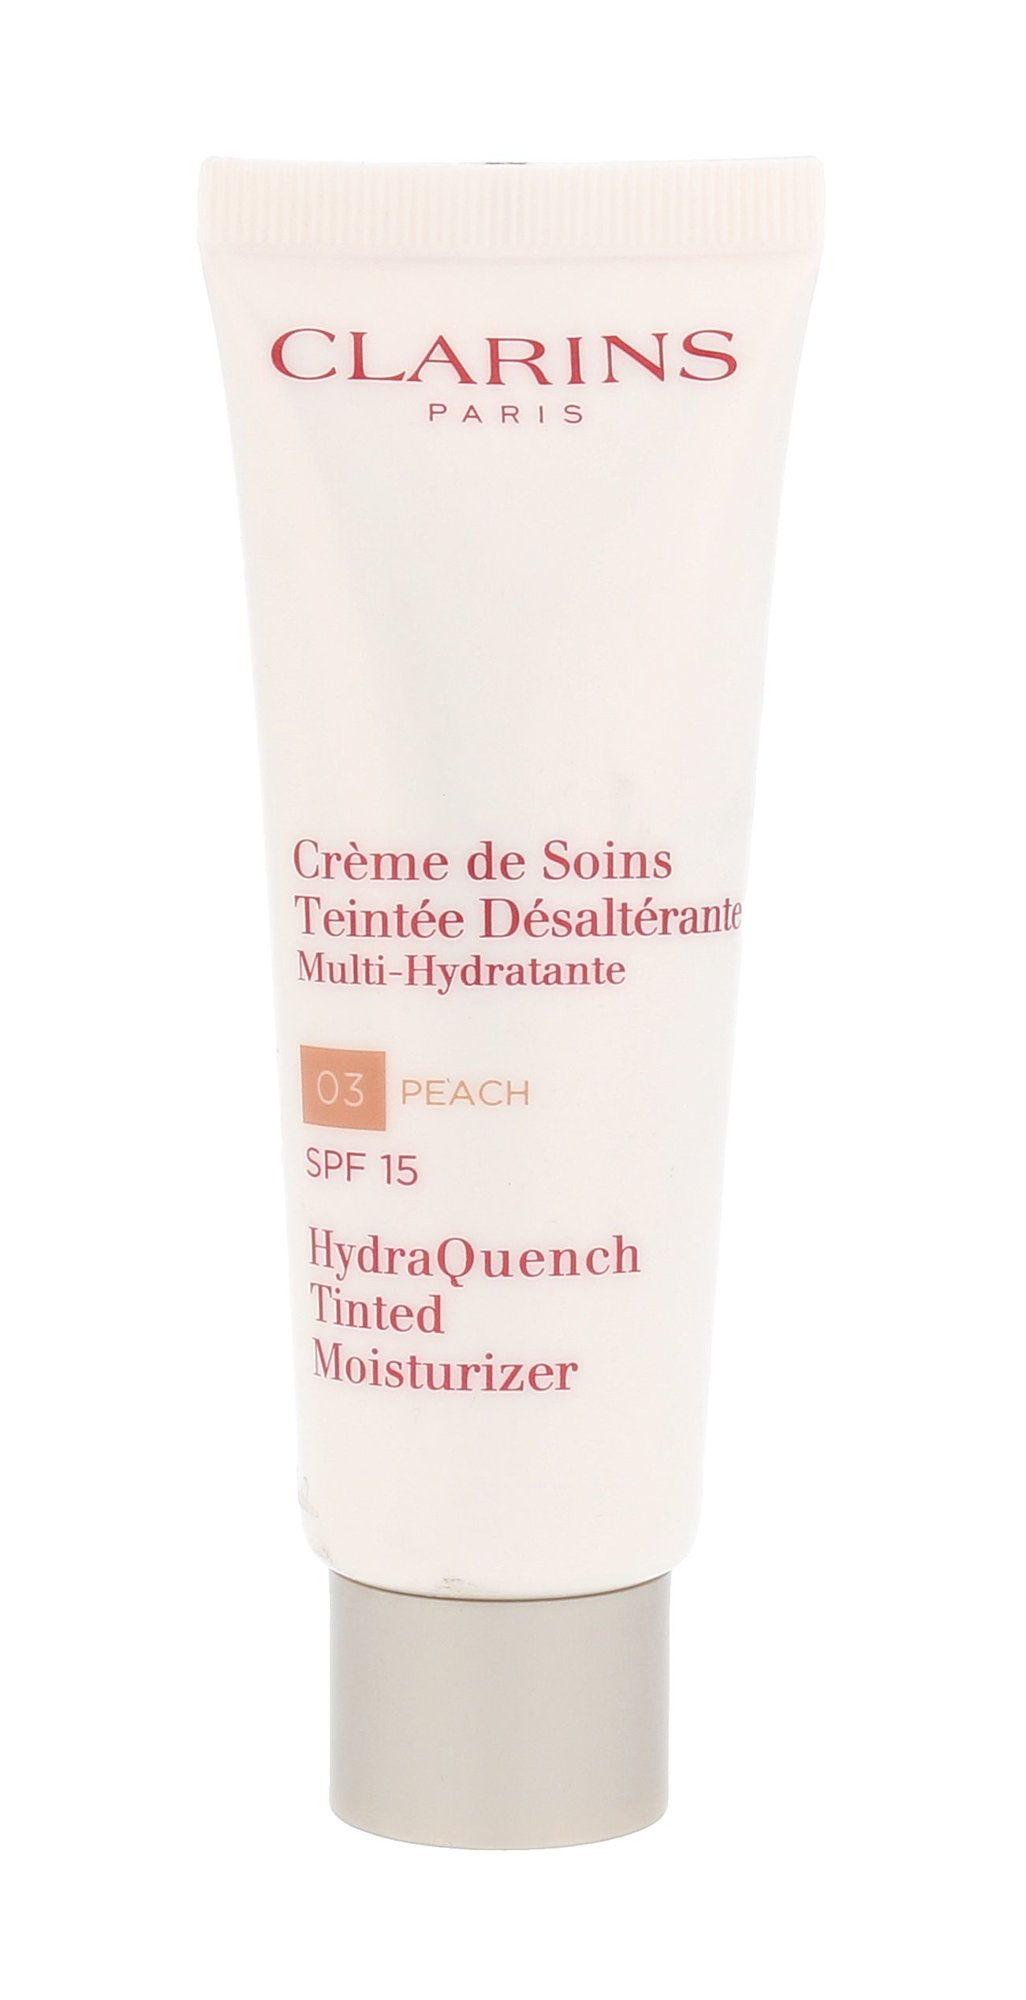 Clarins HydraQuench Cosmetic 50ml 03 Peach